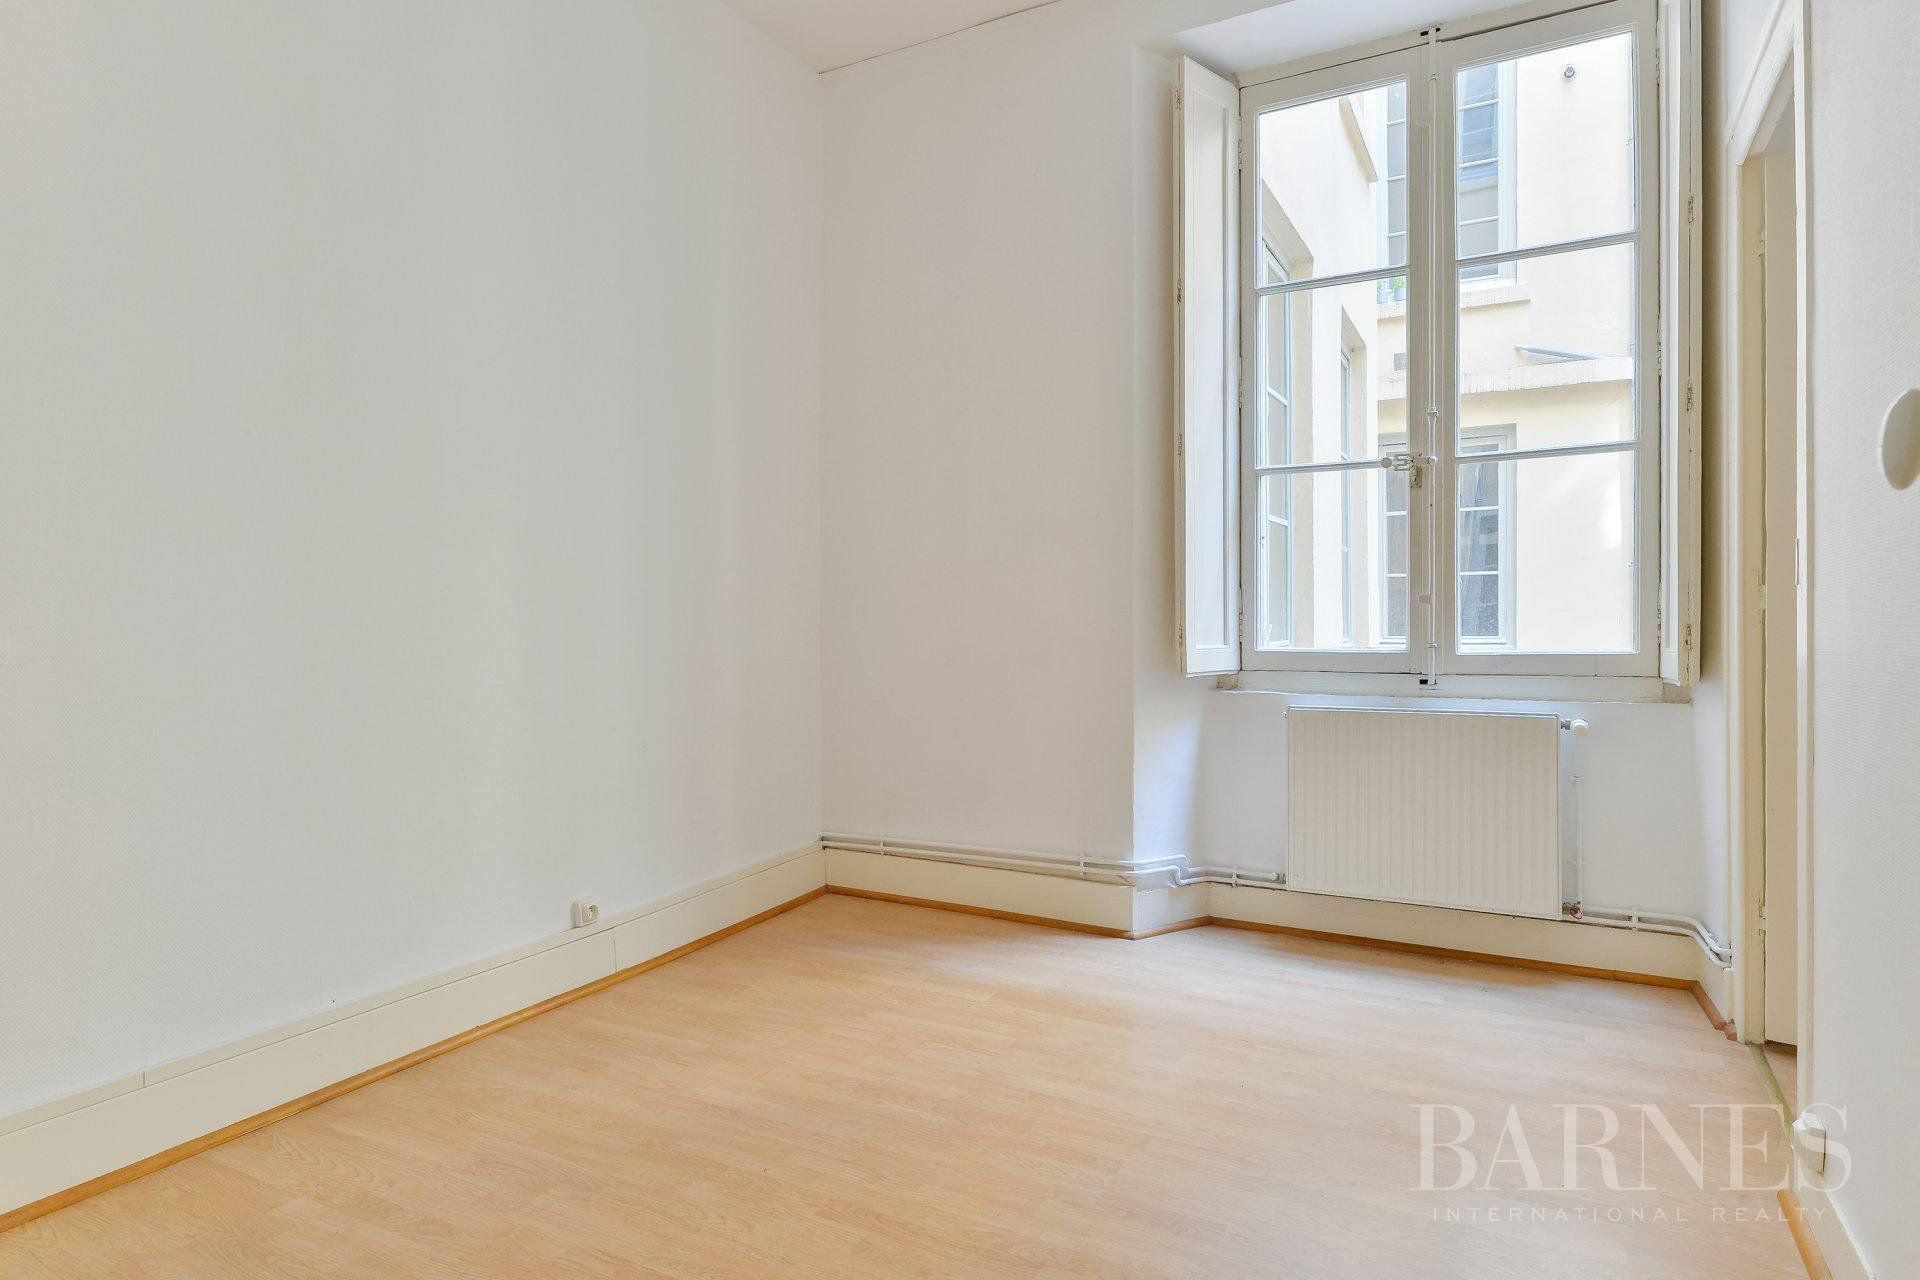 Lyon 2 - Ainay - Courtyard apartment of 89 sqm - 2 bedrooms